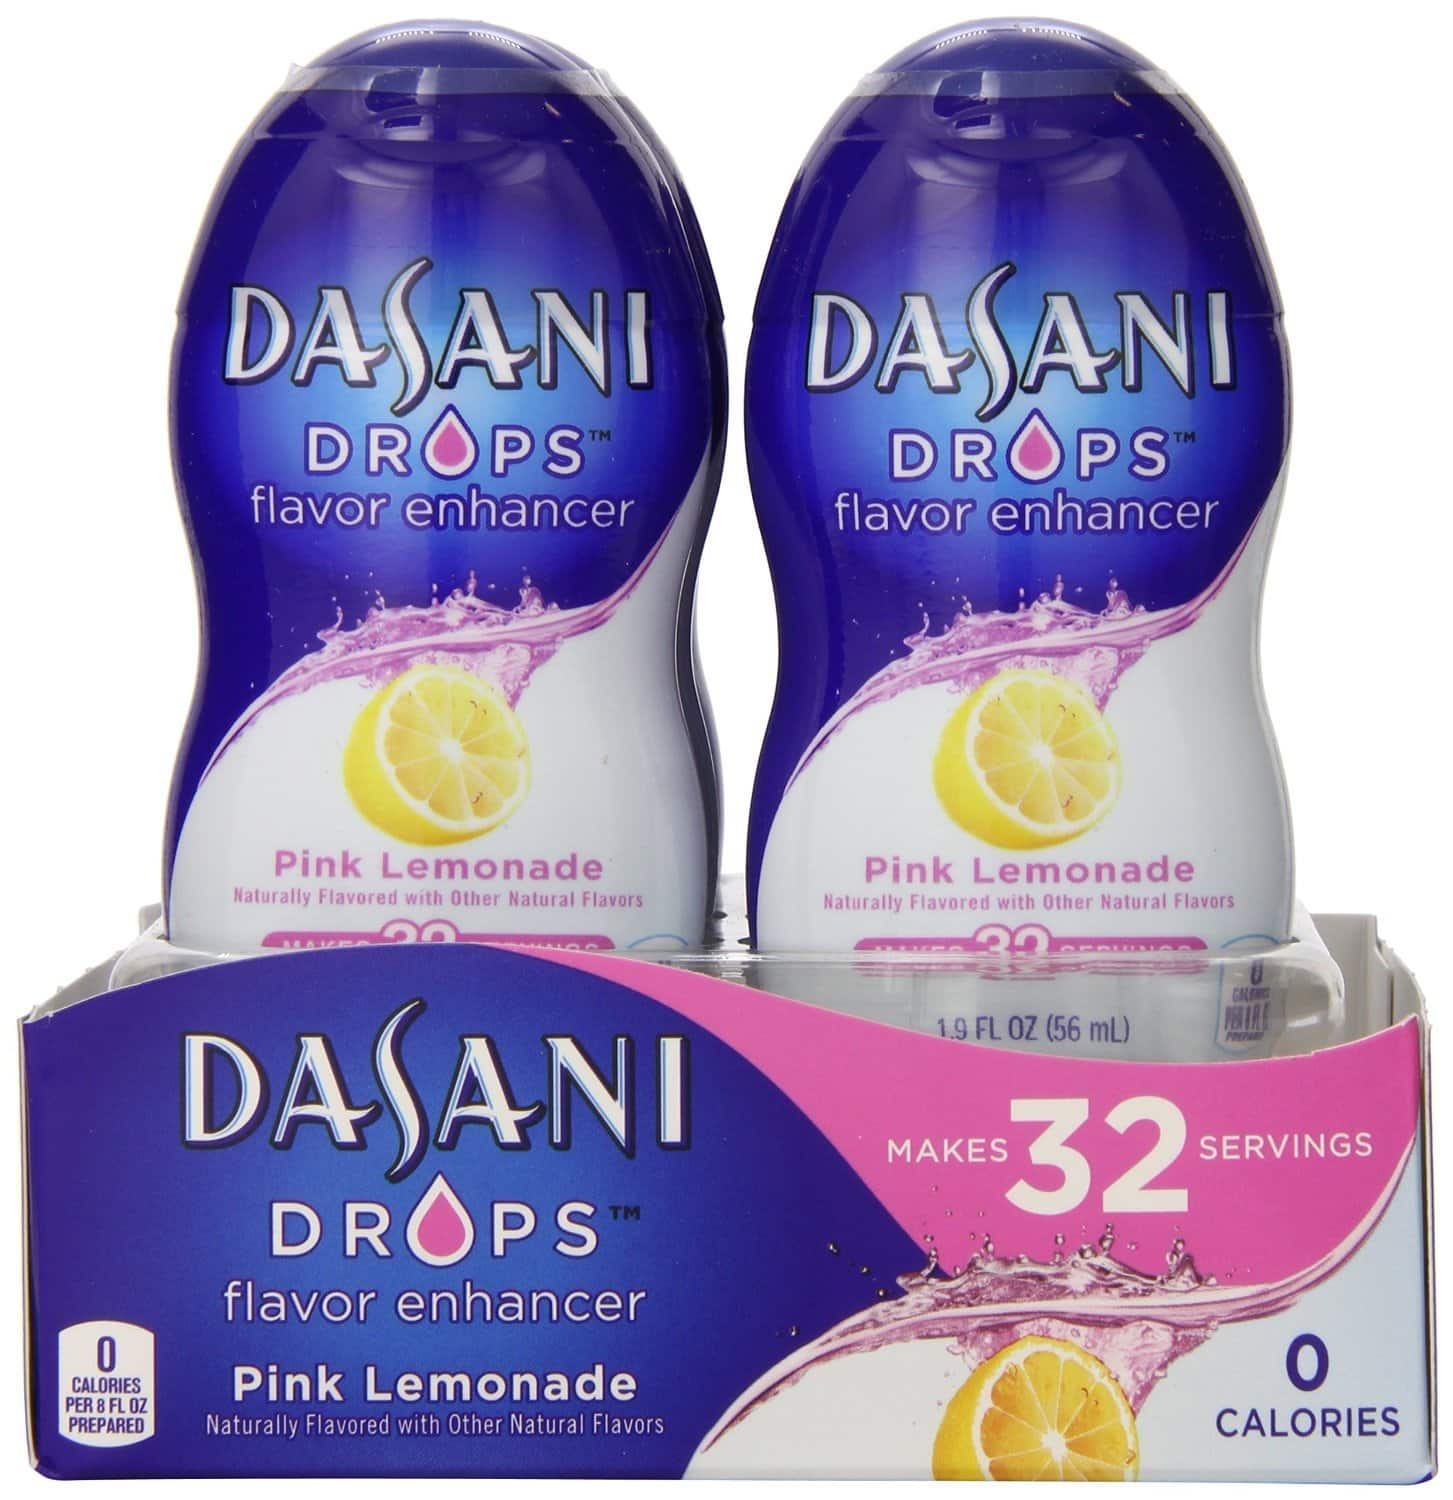 Prime Deal - Dasani DROPS Pink Lemonade, 6 ct, 1.9 FL OZ Bottle - $6.52 @5% or $4.66 @15% with Coupon & S&S